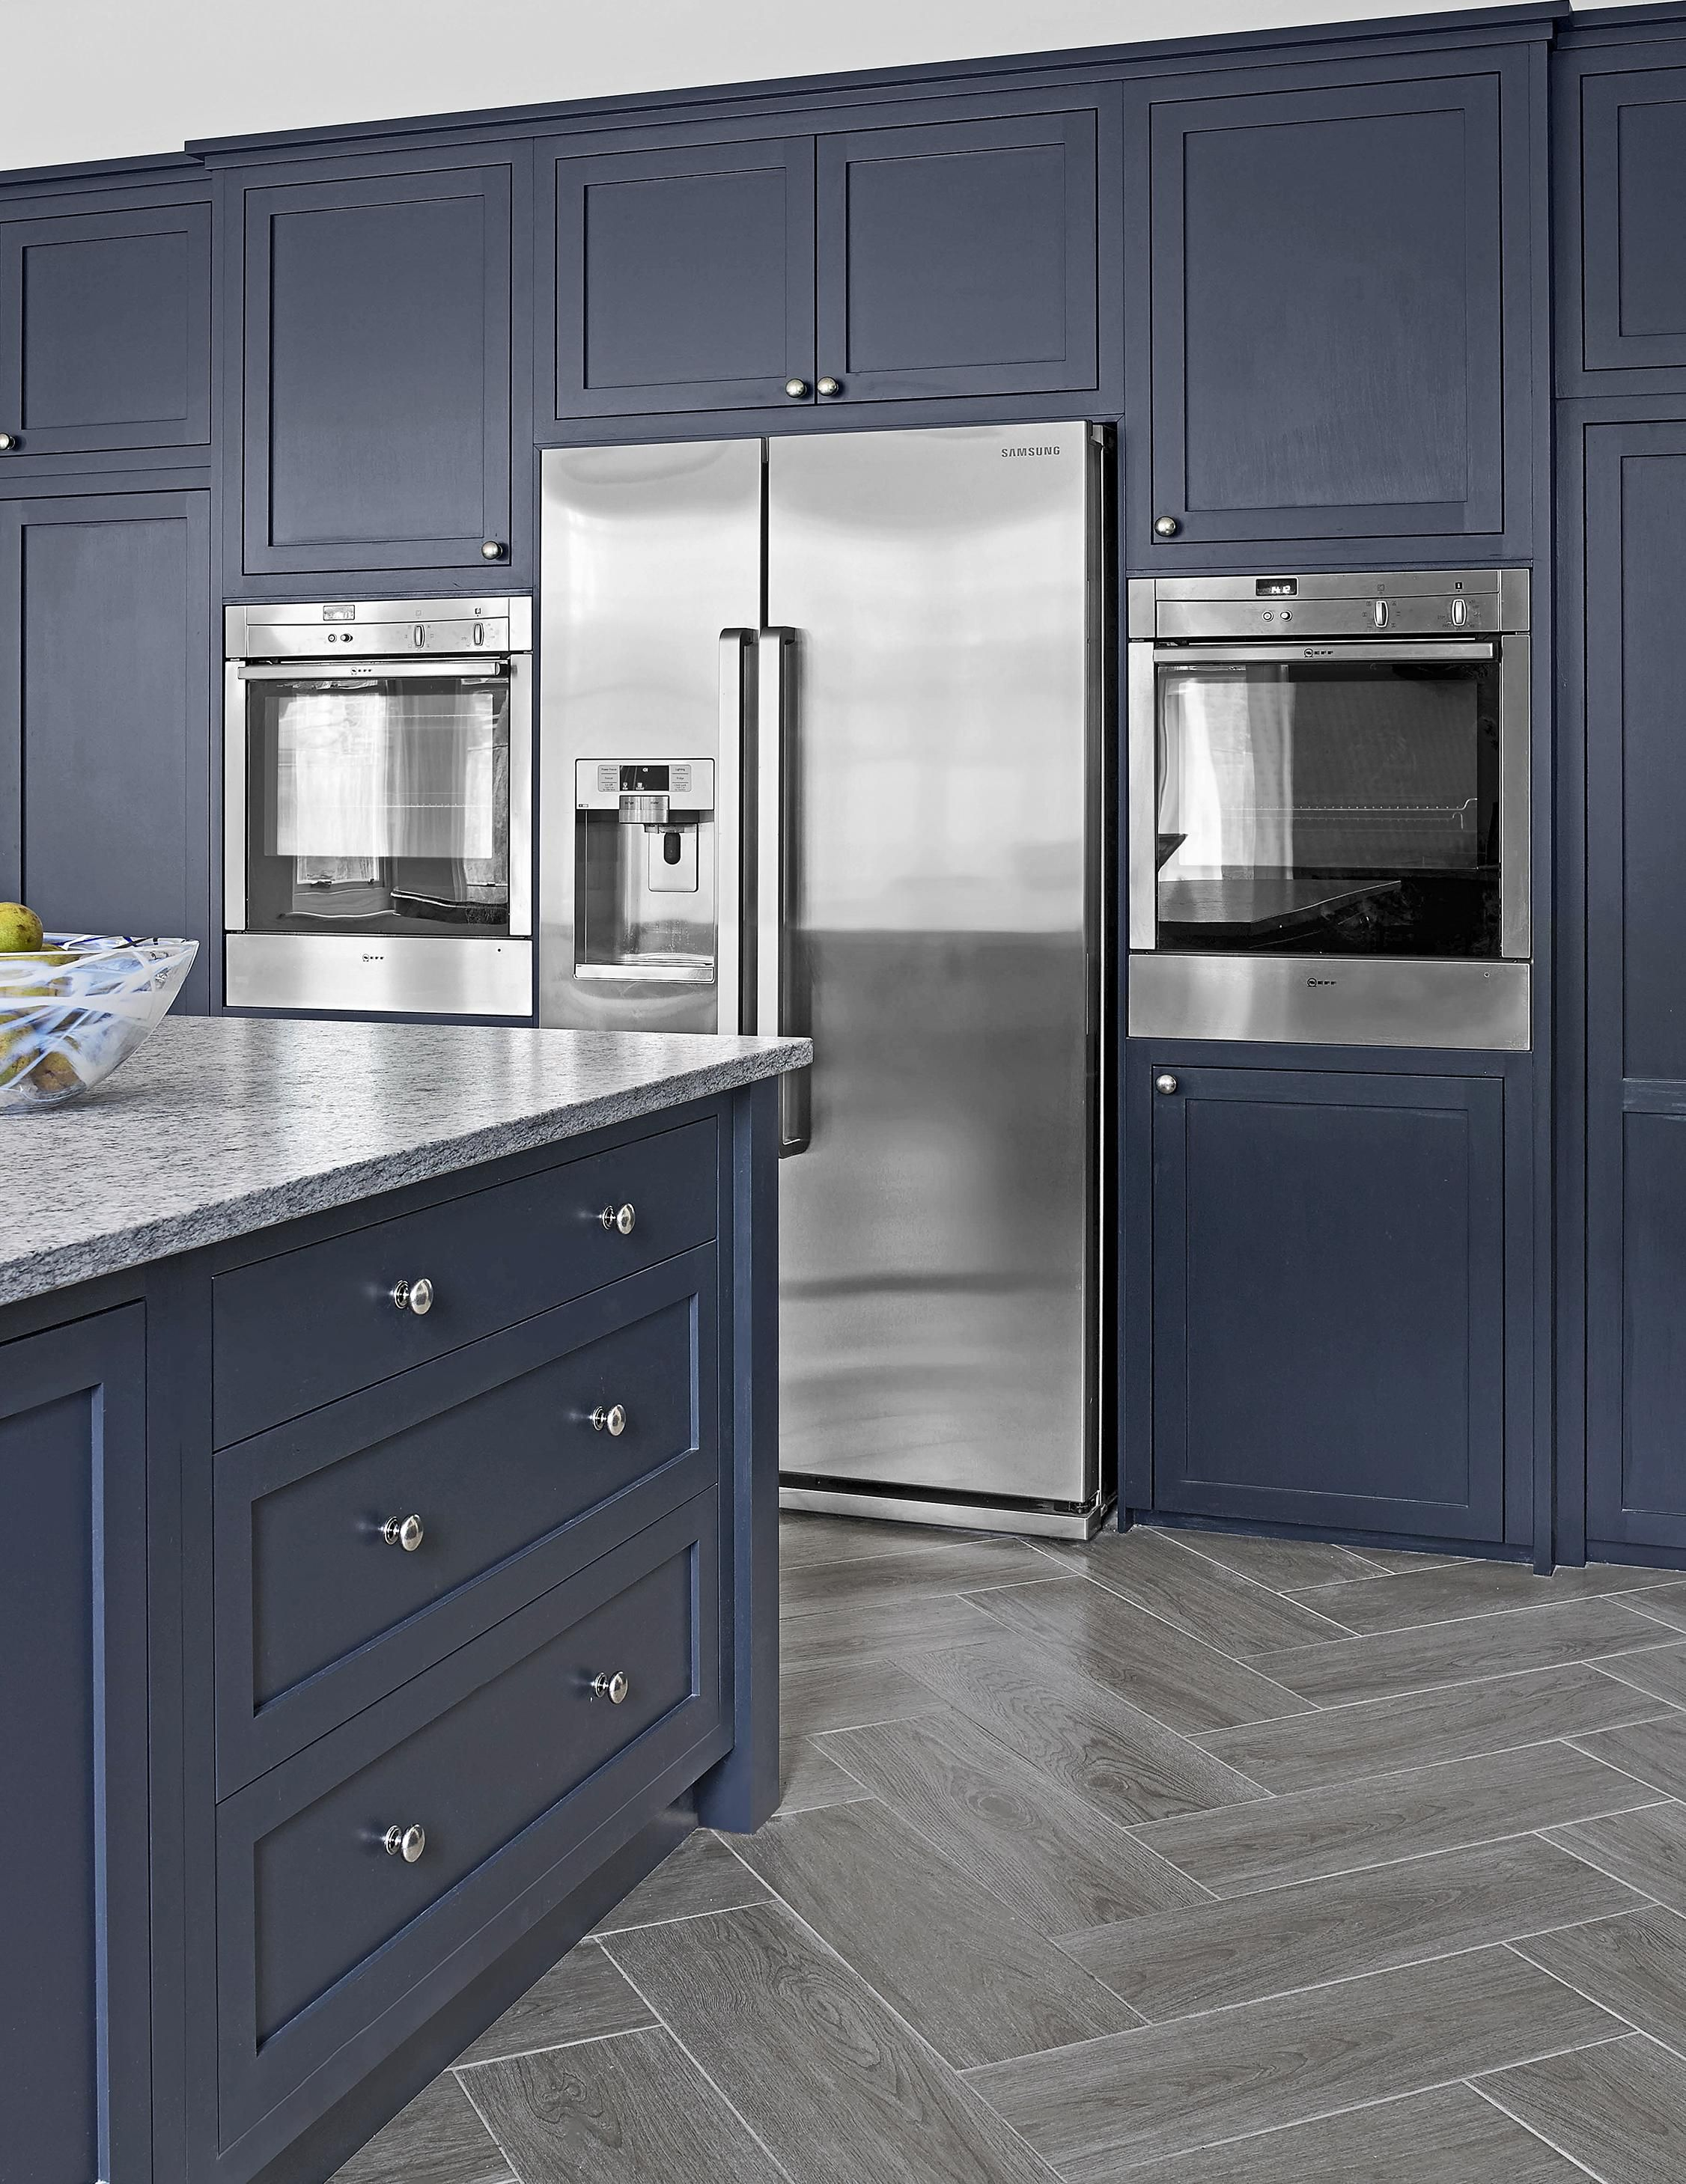 Read This Before You Paint Your Kitchen Cabinets Kitchen Cabinet Design Diy Kitchen Renovation Kitchen Design